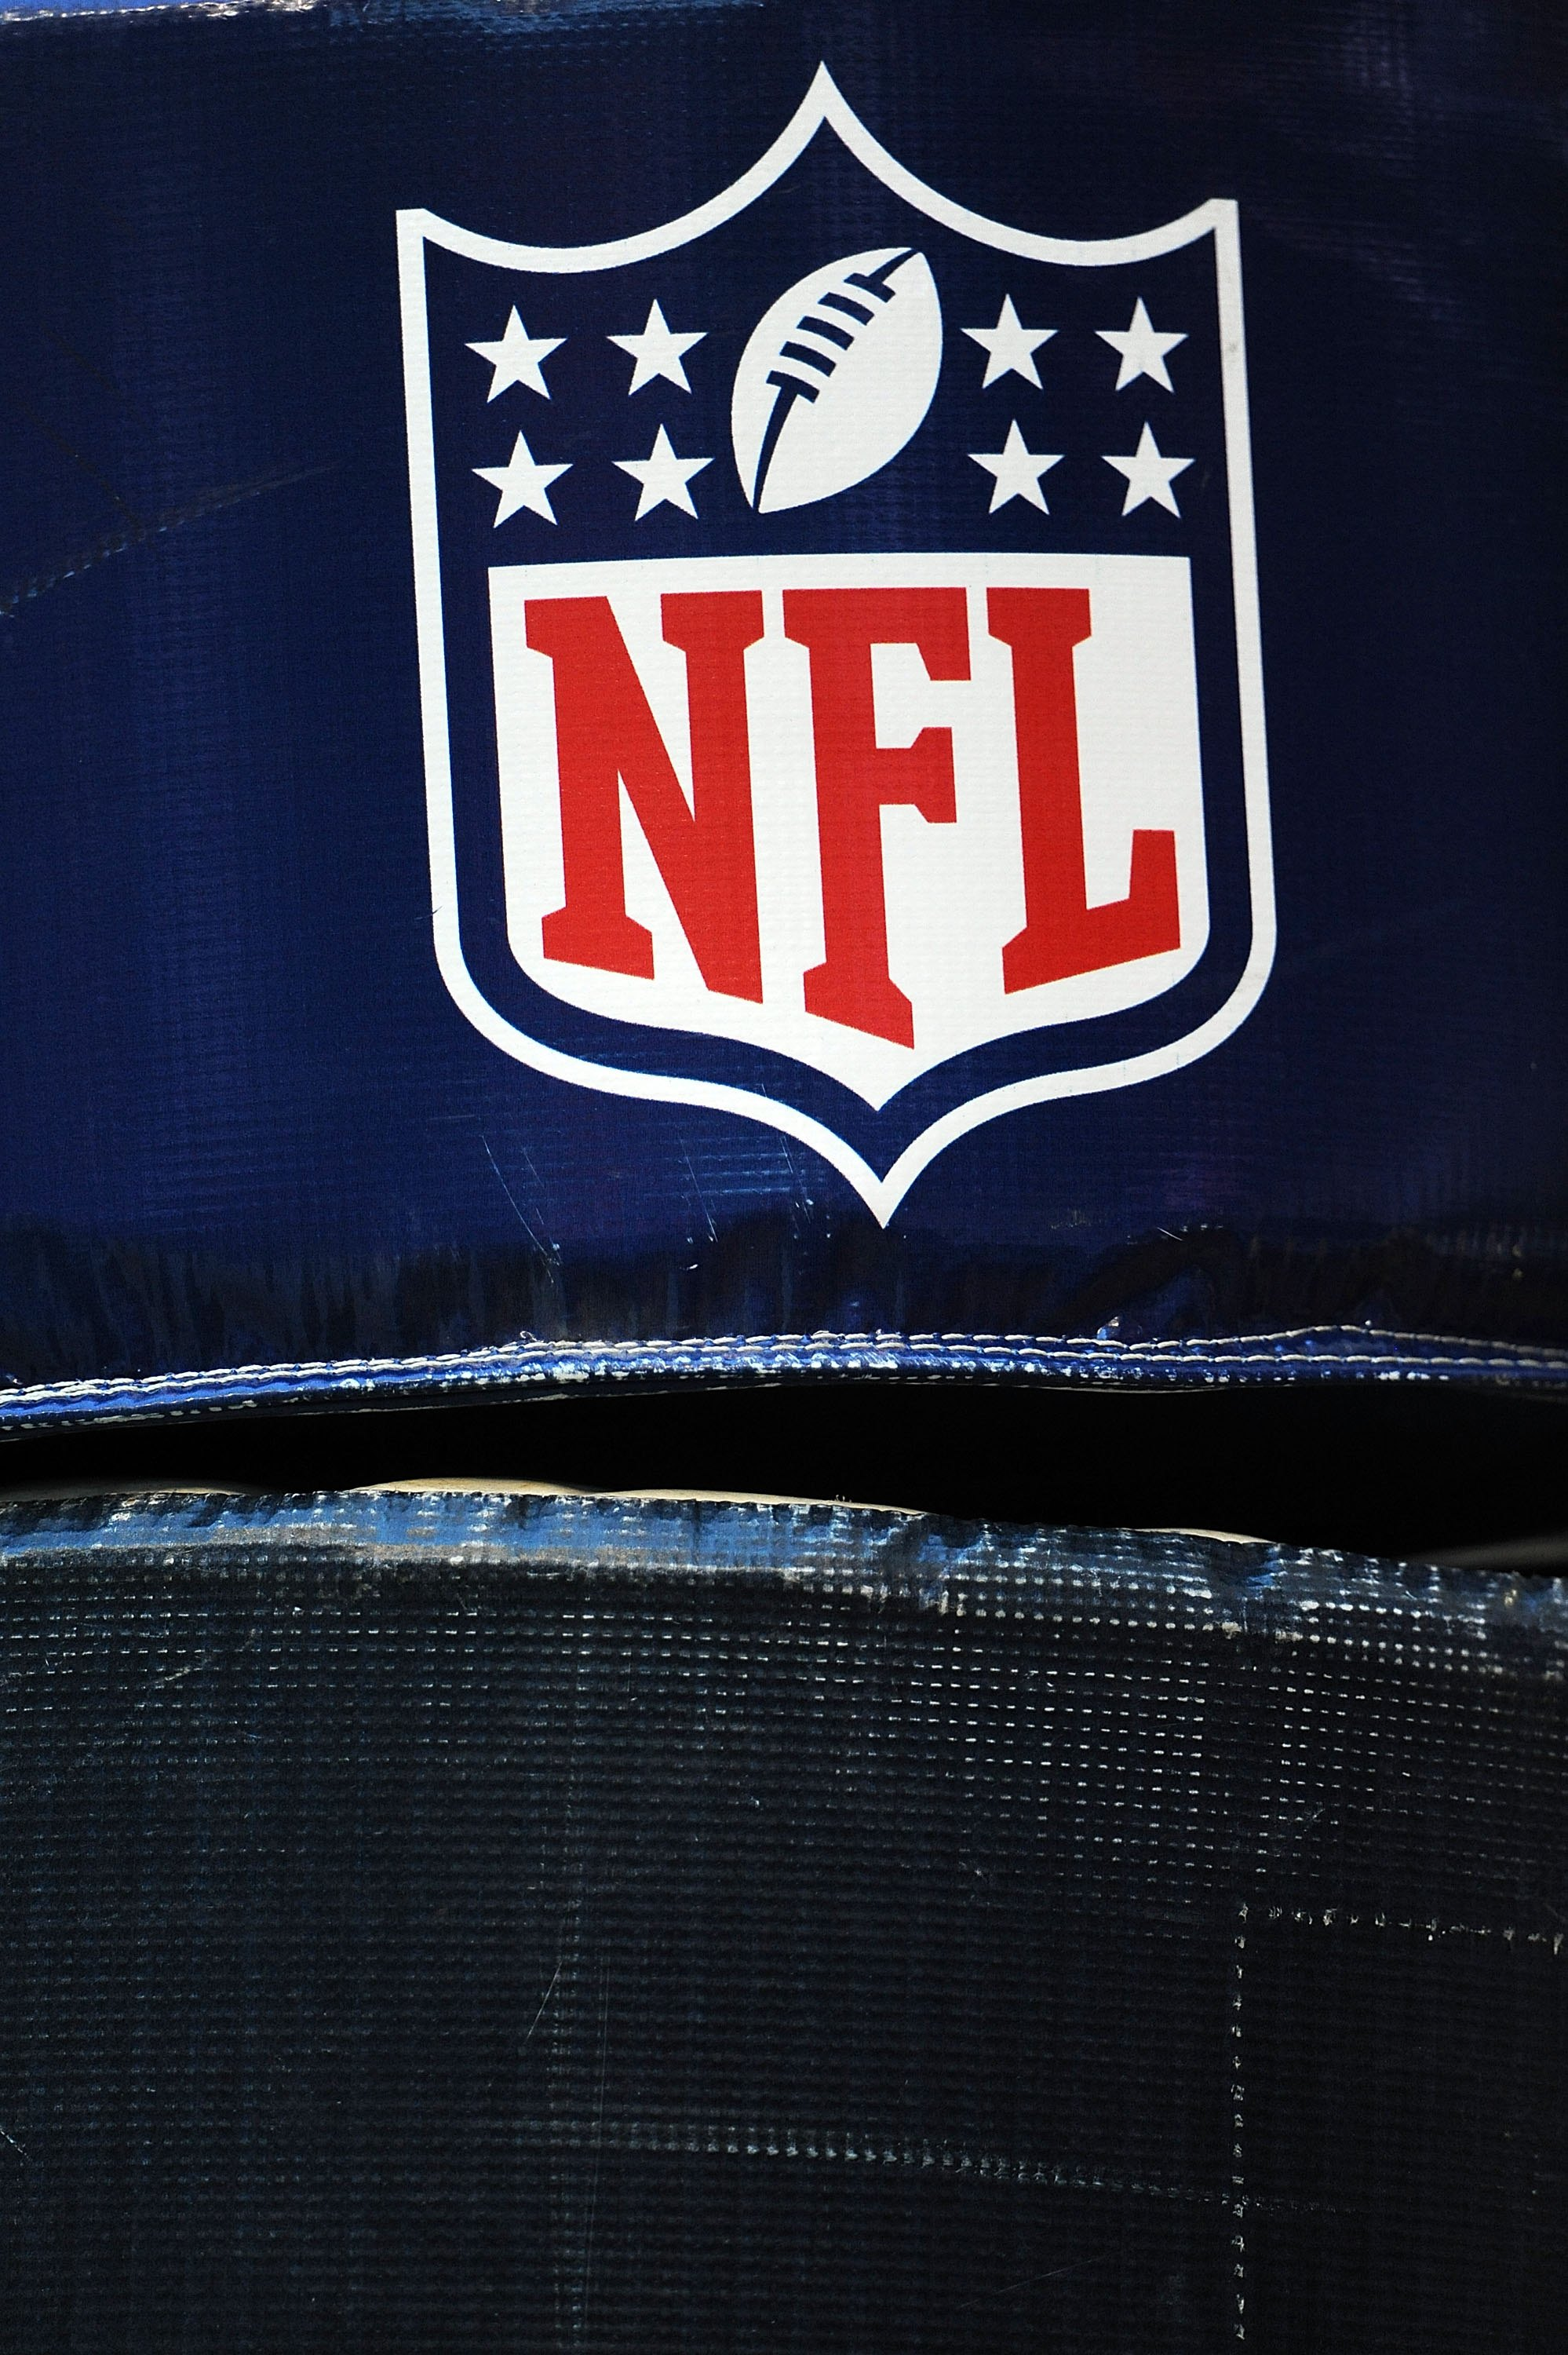 HOUSTON - NOVEMBER 09:  The NFL shield logo on the goal post during play between the Baltimore Ravens and the Houston Texans at Reliant Stadium on November 9, 2008 in Houston, Texas.  (Photo by Ronald Martinez/Getty Images)